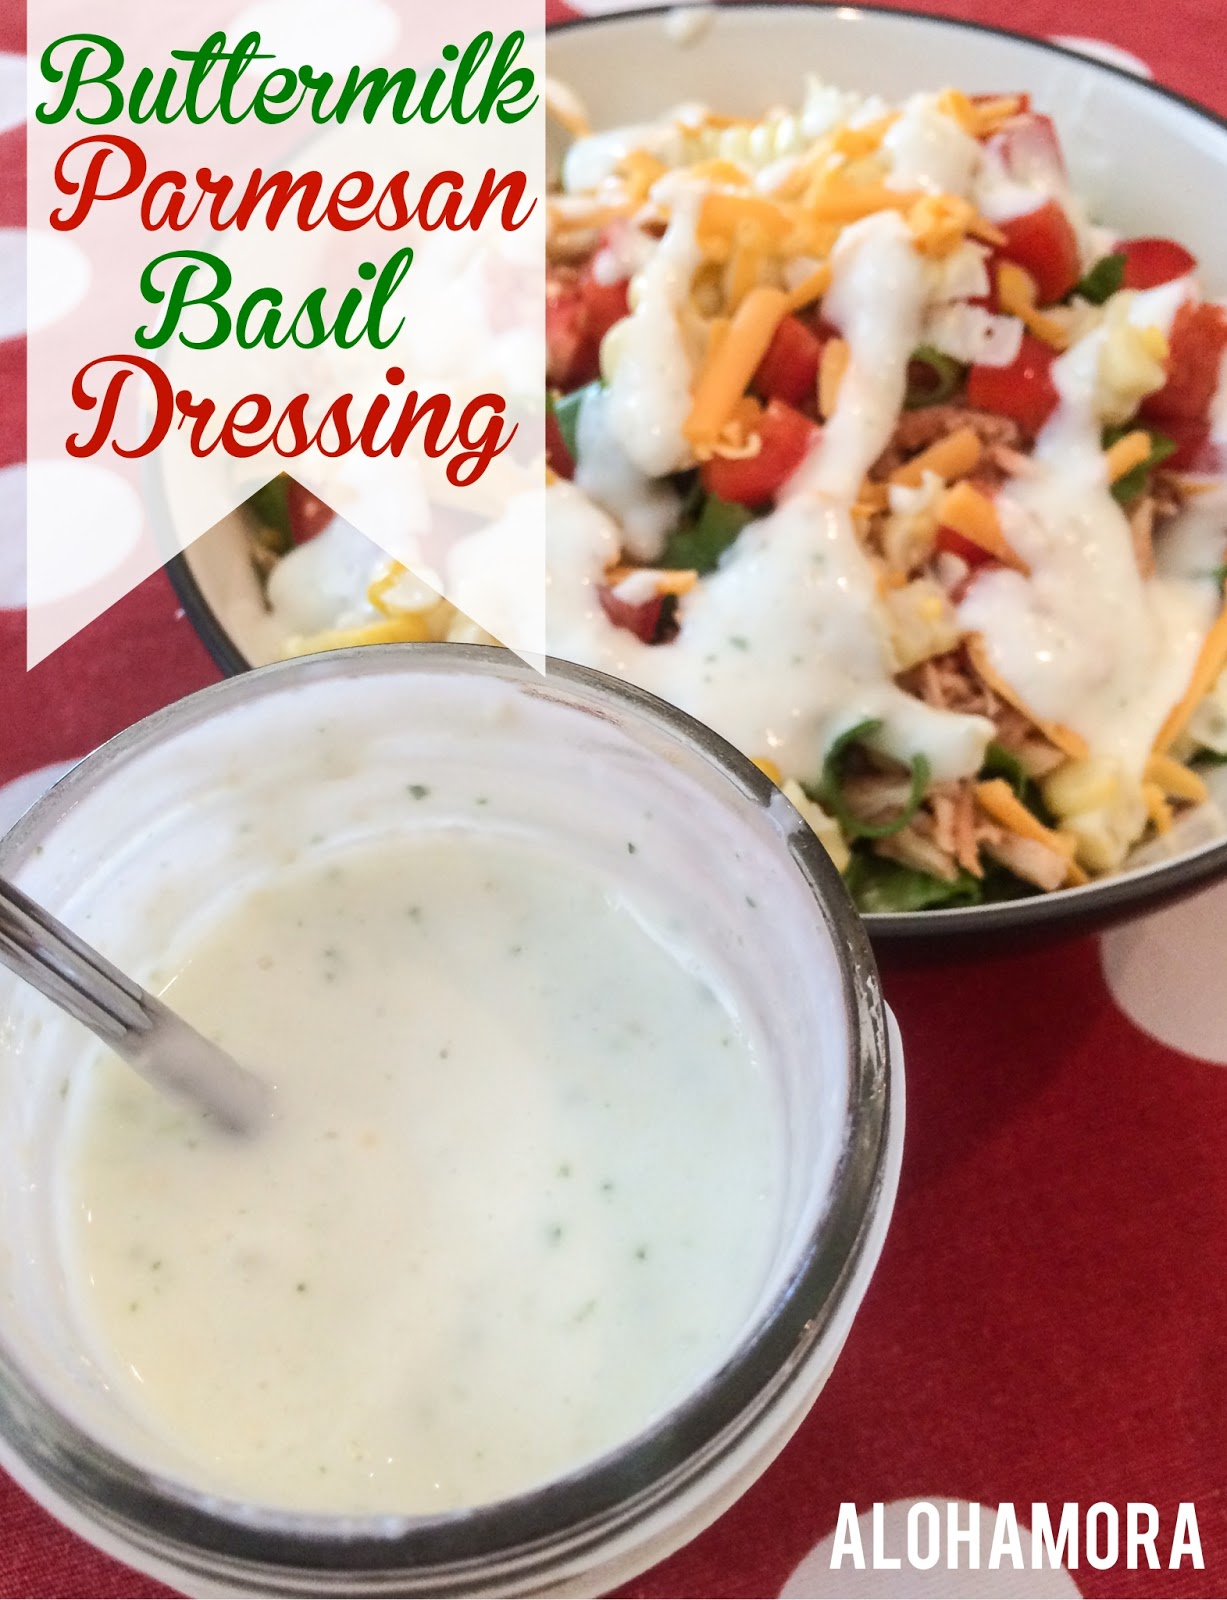 Fast and easy homemade Buttermilk Parmesan Basil Salad Dressing or Vegetable Dip.  Gluten Free Alohamora Open a Book http://alohamoraopenabook.blogspot.com/